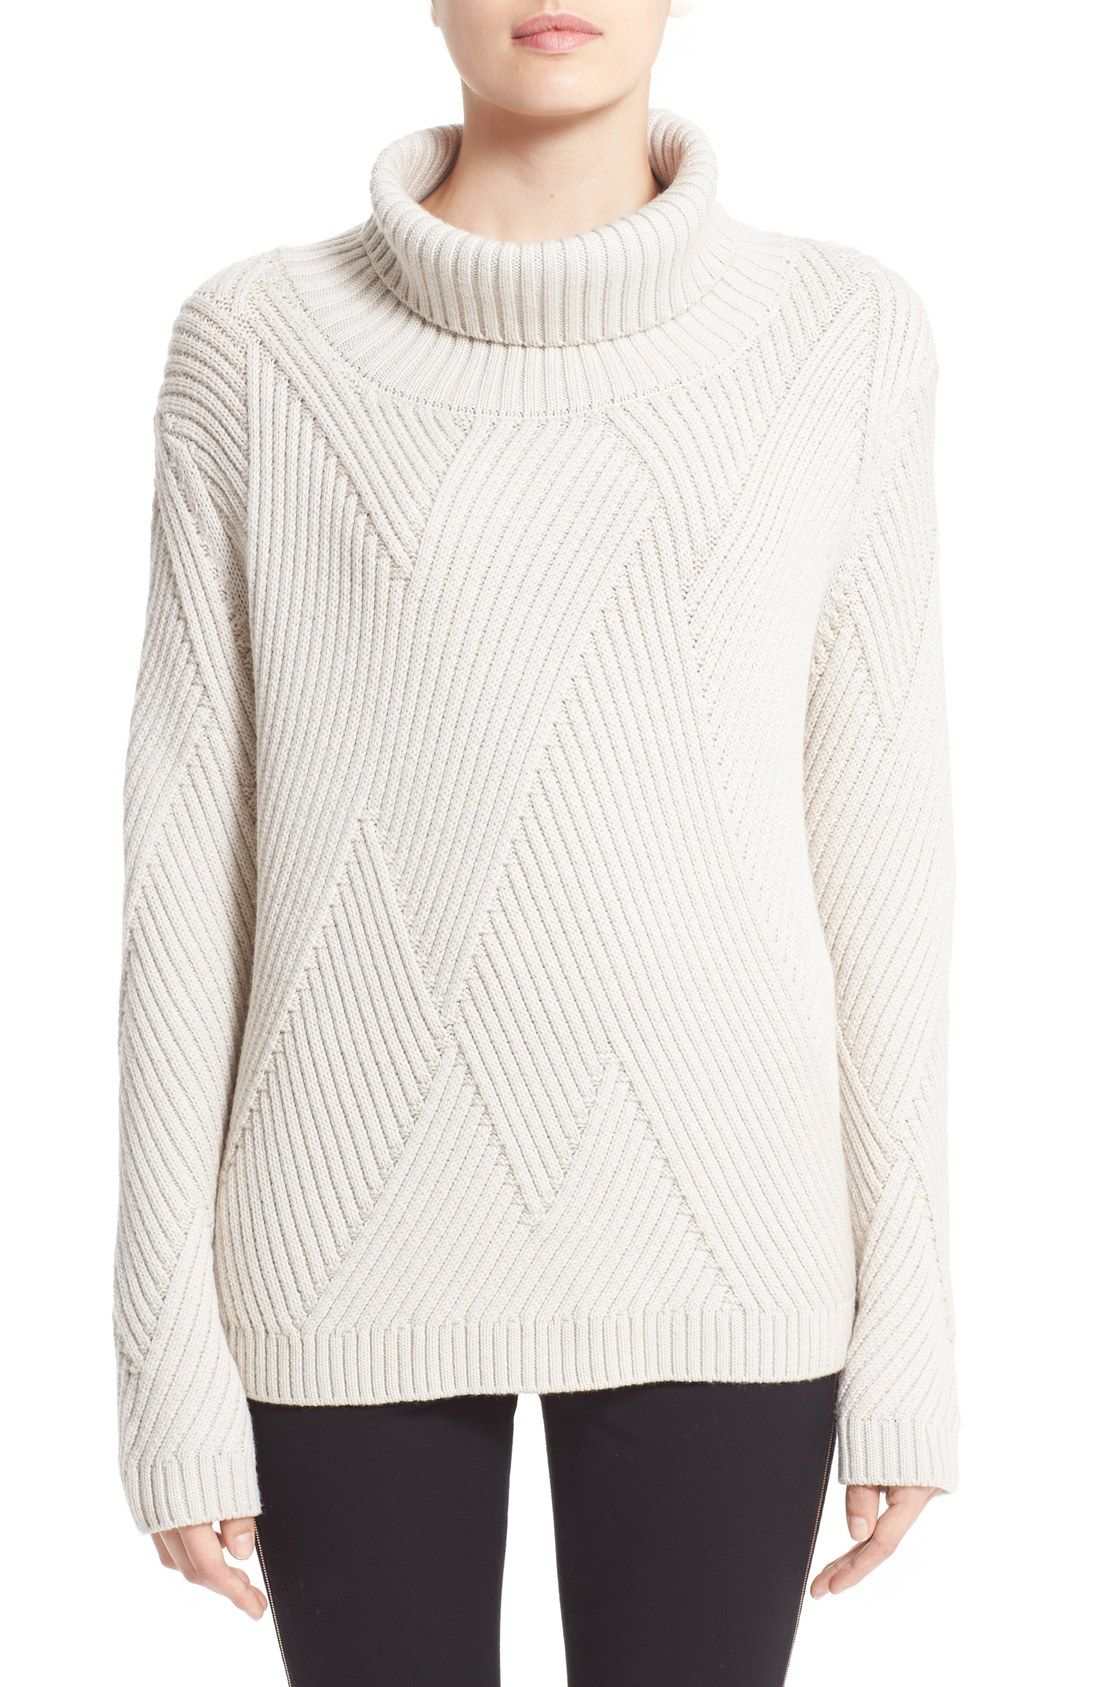 Rag u bone uBlitheu Merino Wool Turtleneck Sweater  Sweaters